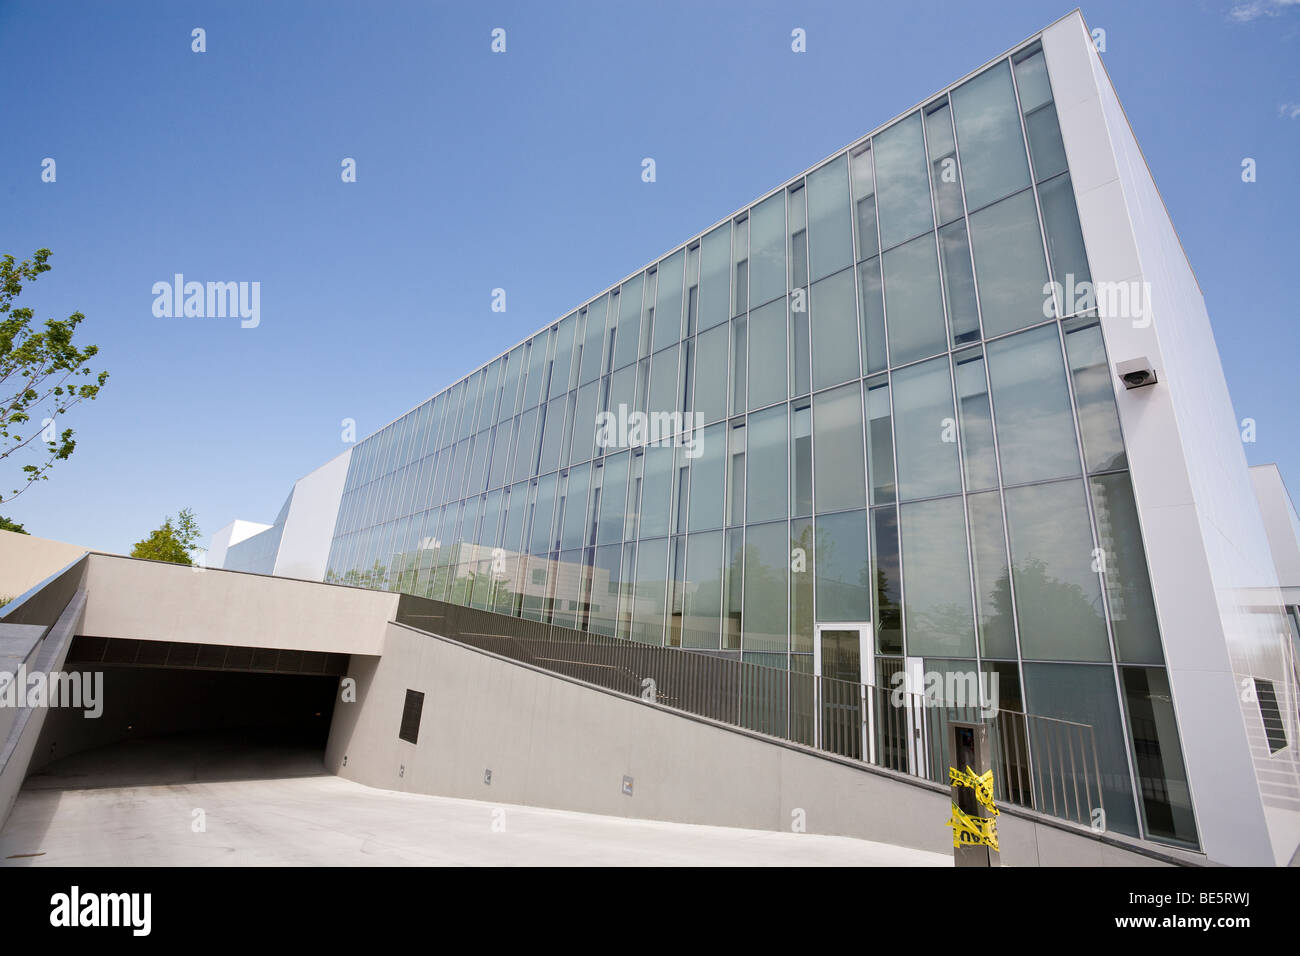 Garage entrance to the Delegation of the Ismaili Imamat: . Headquarters of Aga Khan Development  Network in Canada - Stock Image